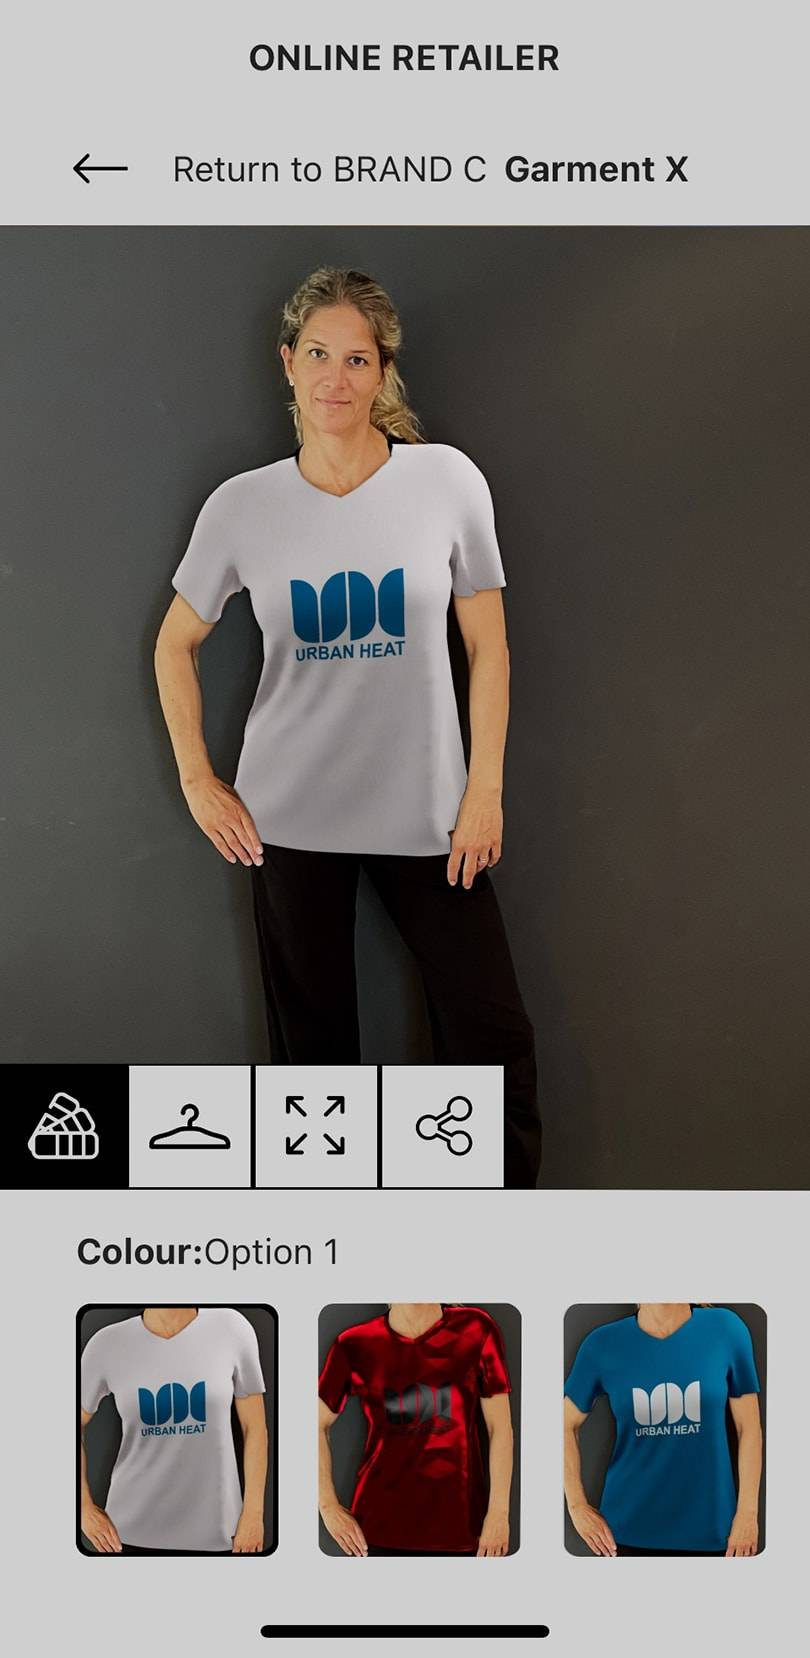 The potential to revolutionize the fashion and e-commerce industry-the first version of an app for virtual fitting from the Munich Startup URBAN HEAT